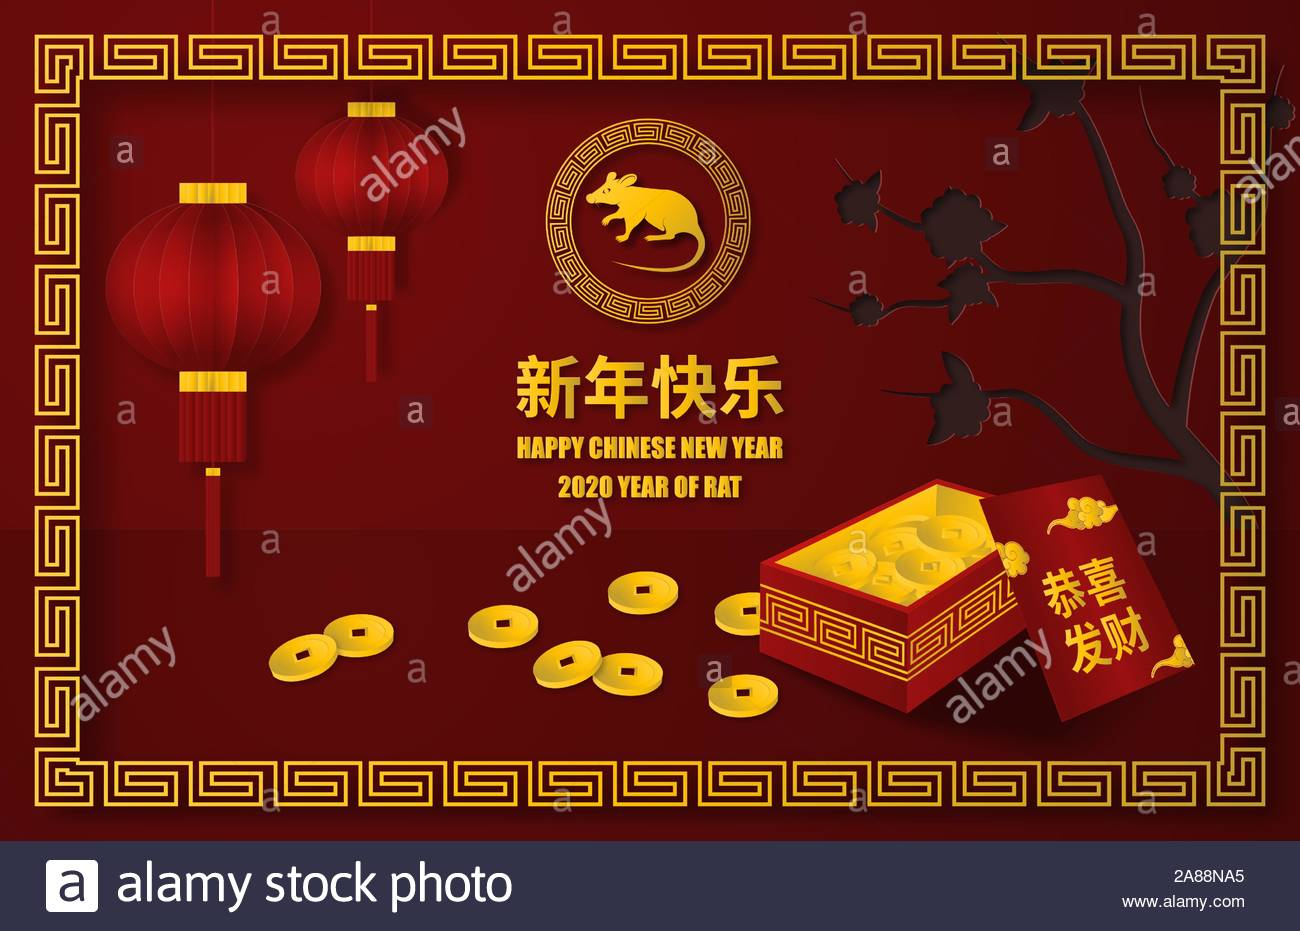 Happy Chinese New Year 2020 background in paper cut style Year of 1300x931